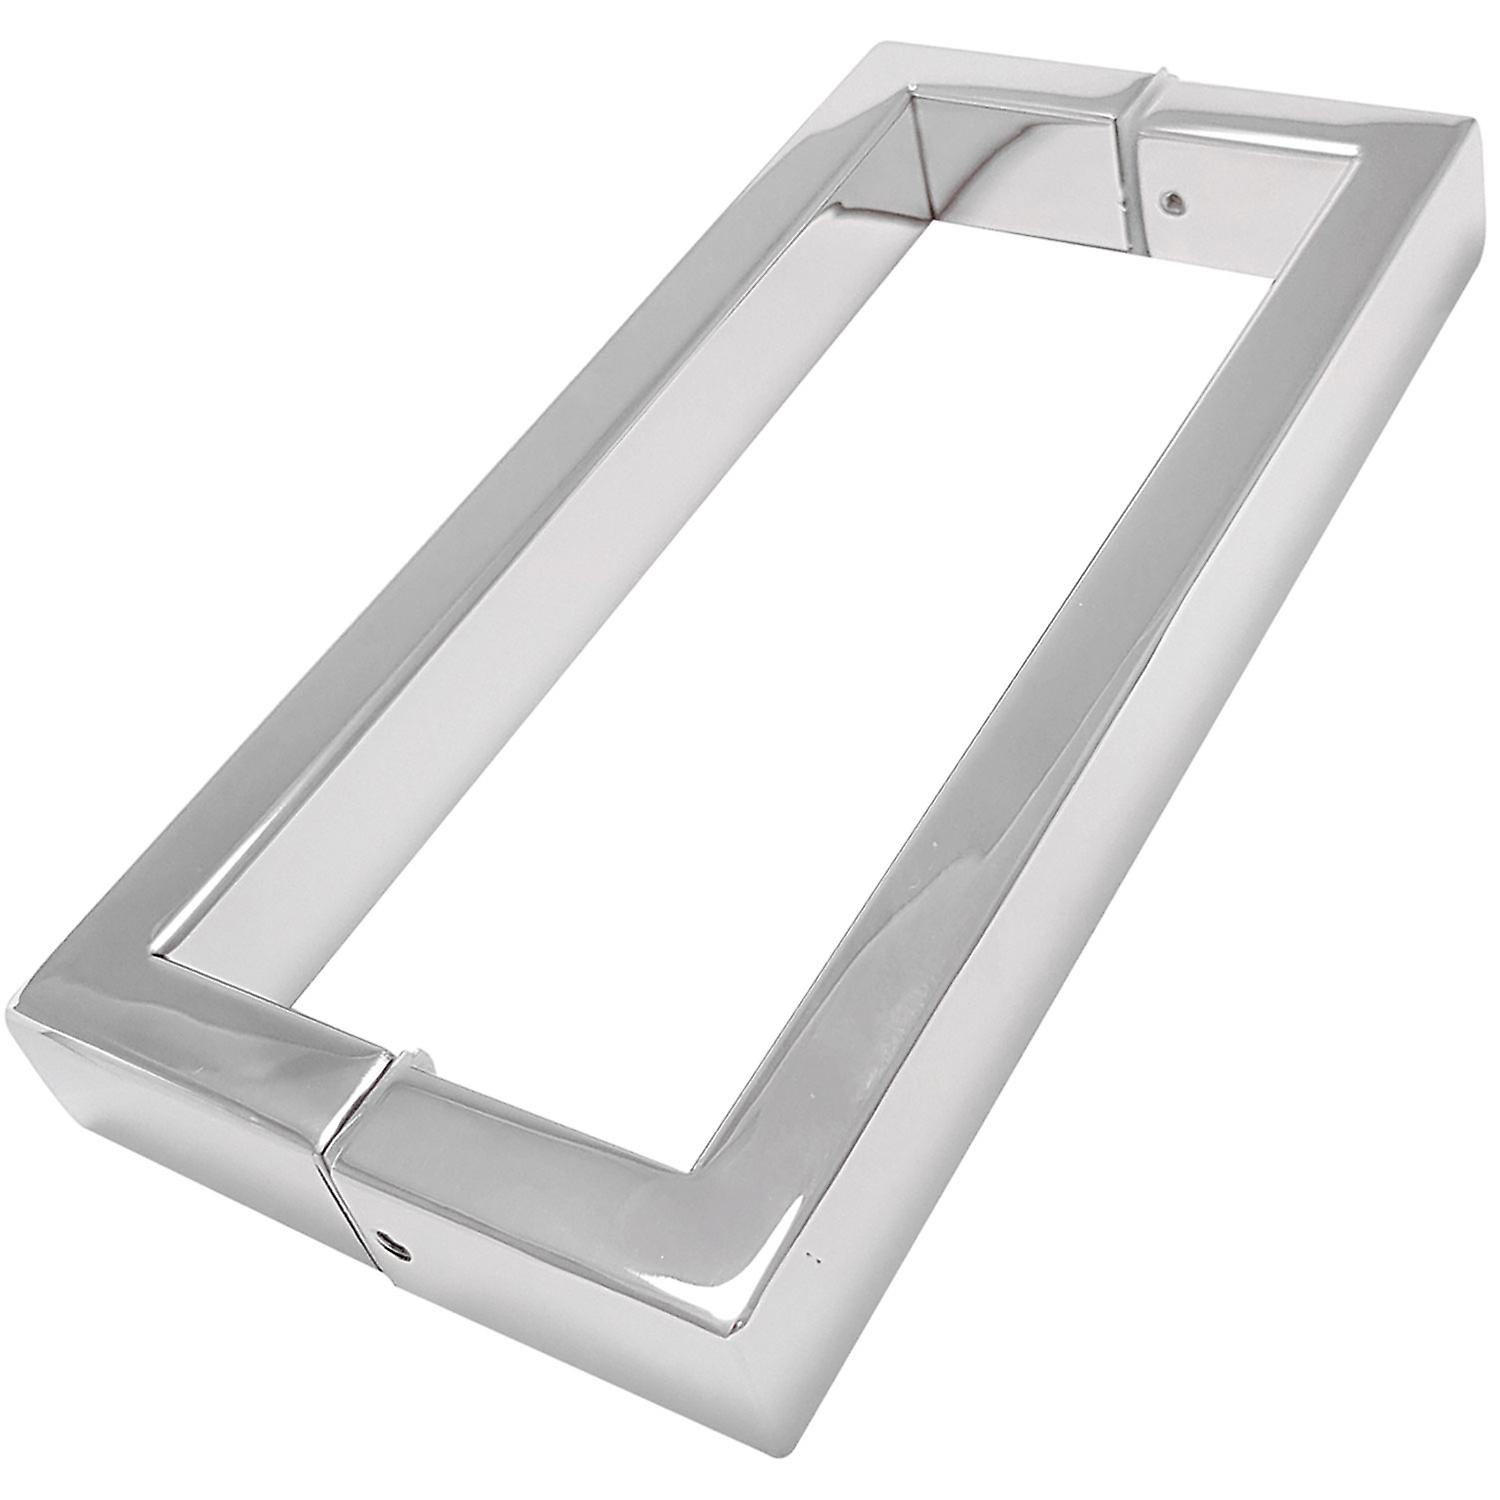 175mm Shower Door Handles (17.5cm Hole to Hole) - Stainless Steel